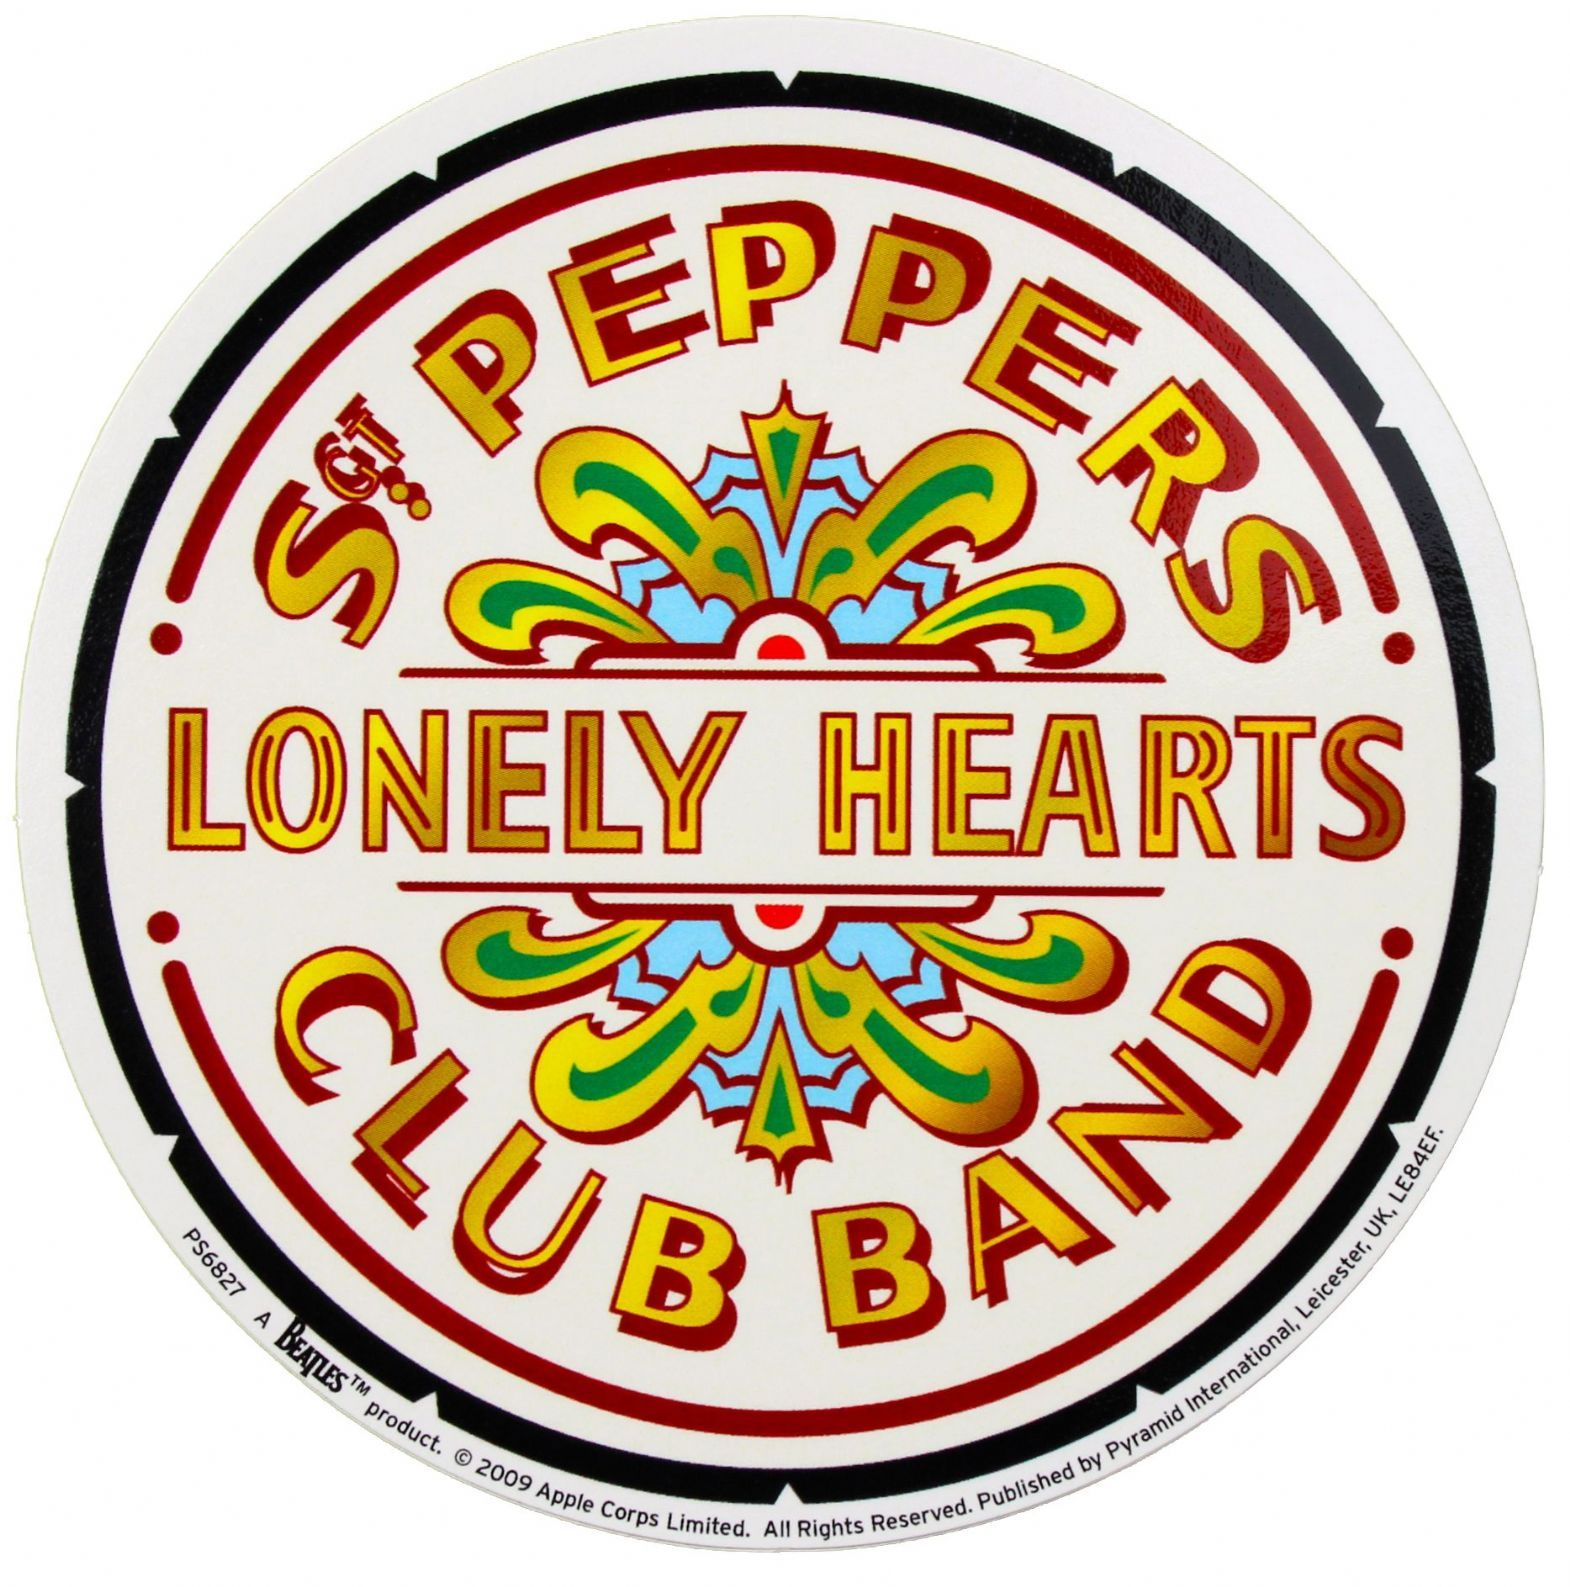 the-beatles-sgt-peppers-lonely-hearts-club-band-bass-drum-vinyl-sticker-2715-p